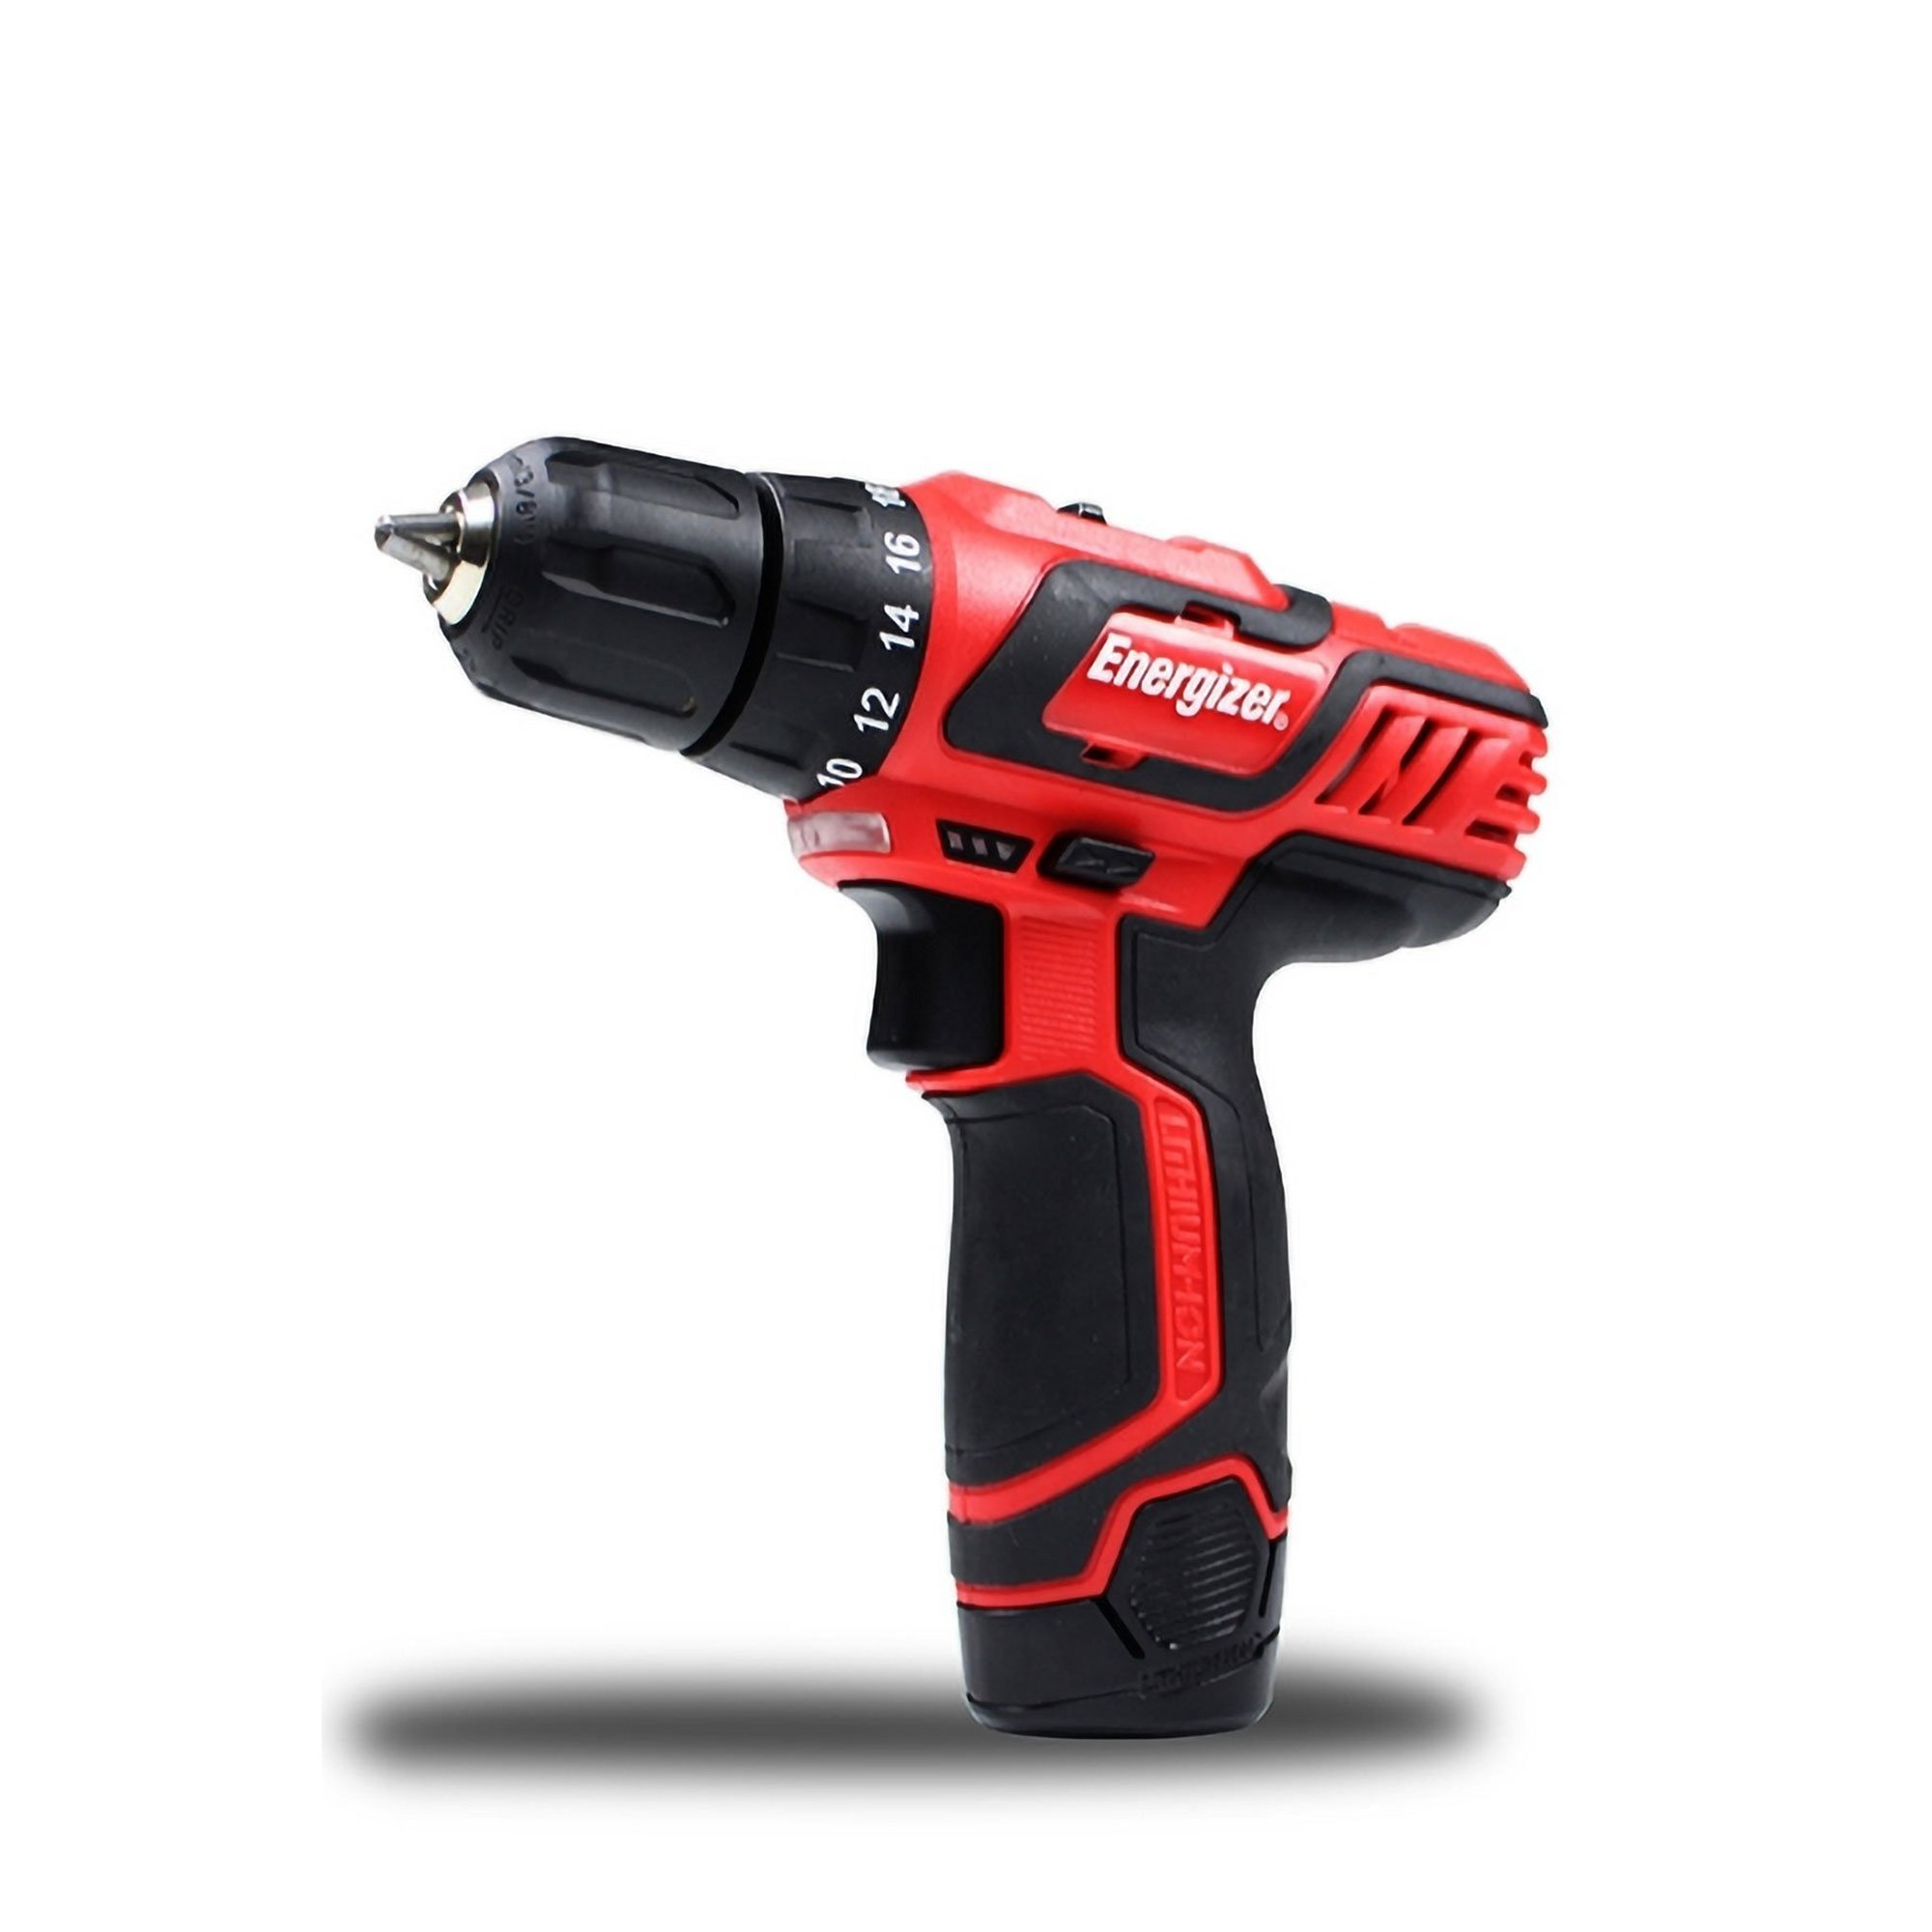 Image of Energizer Portable Power Tool Drill Screwdriver